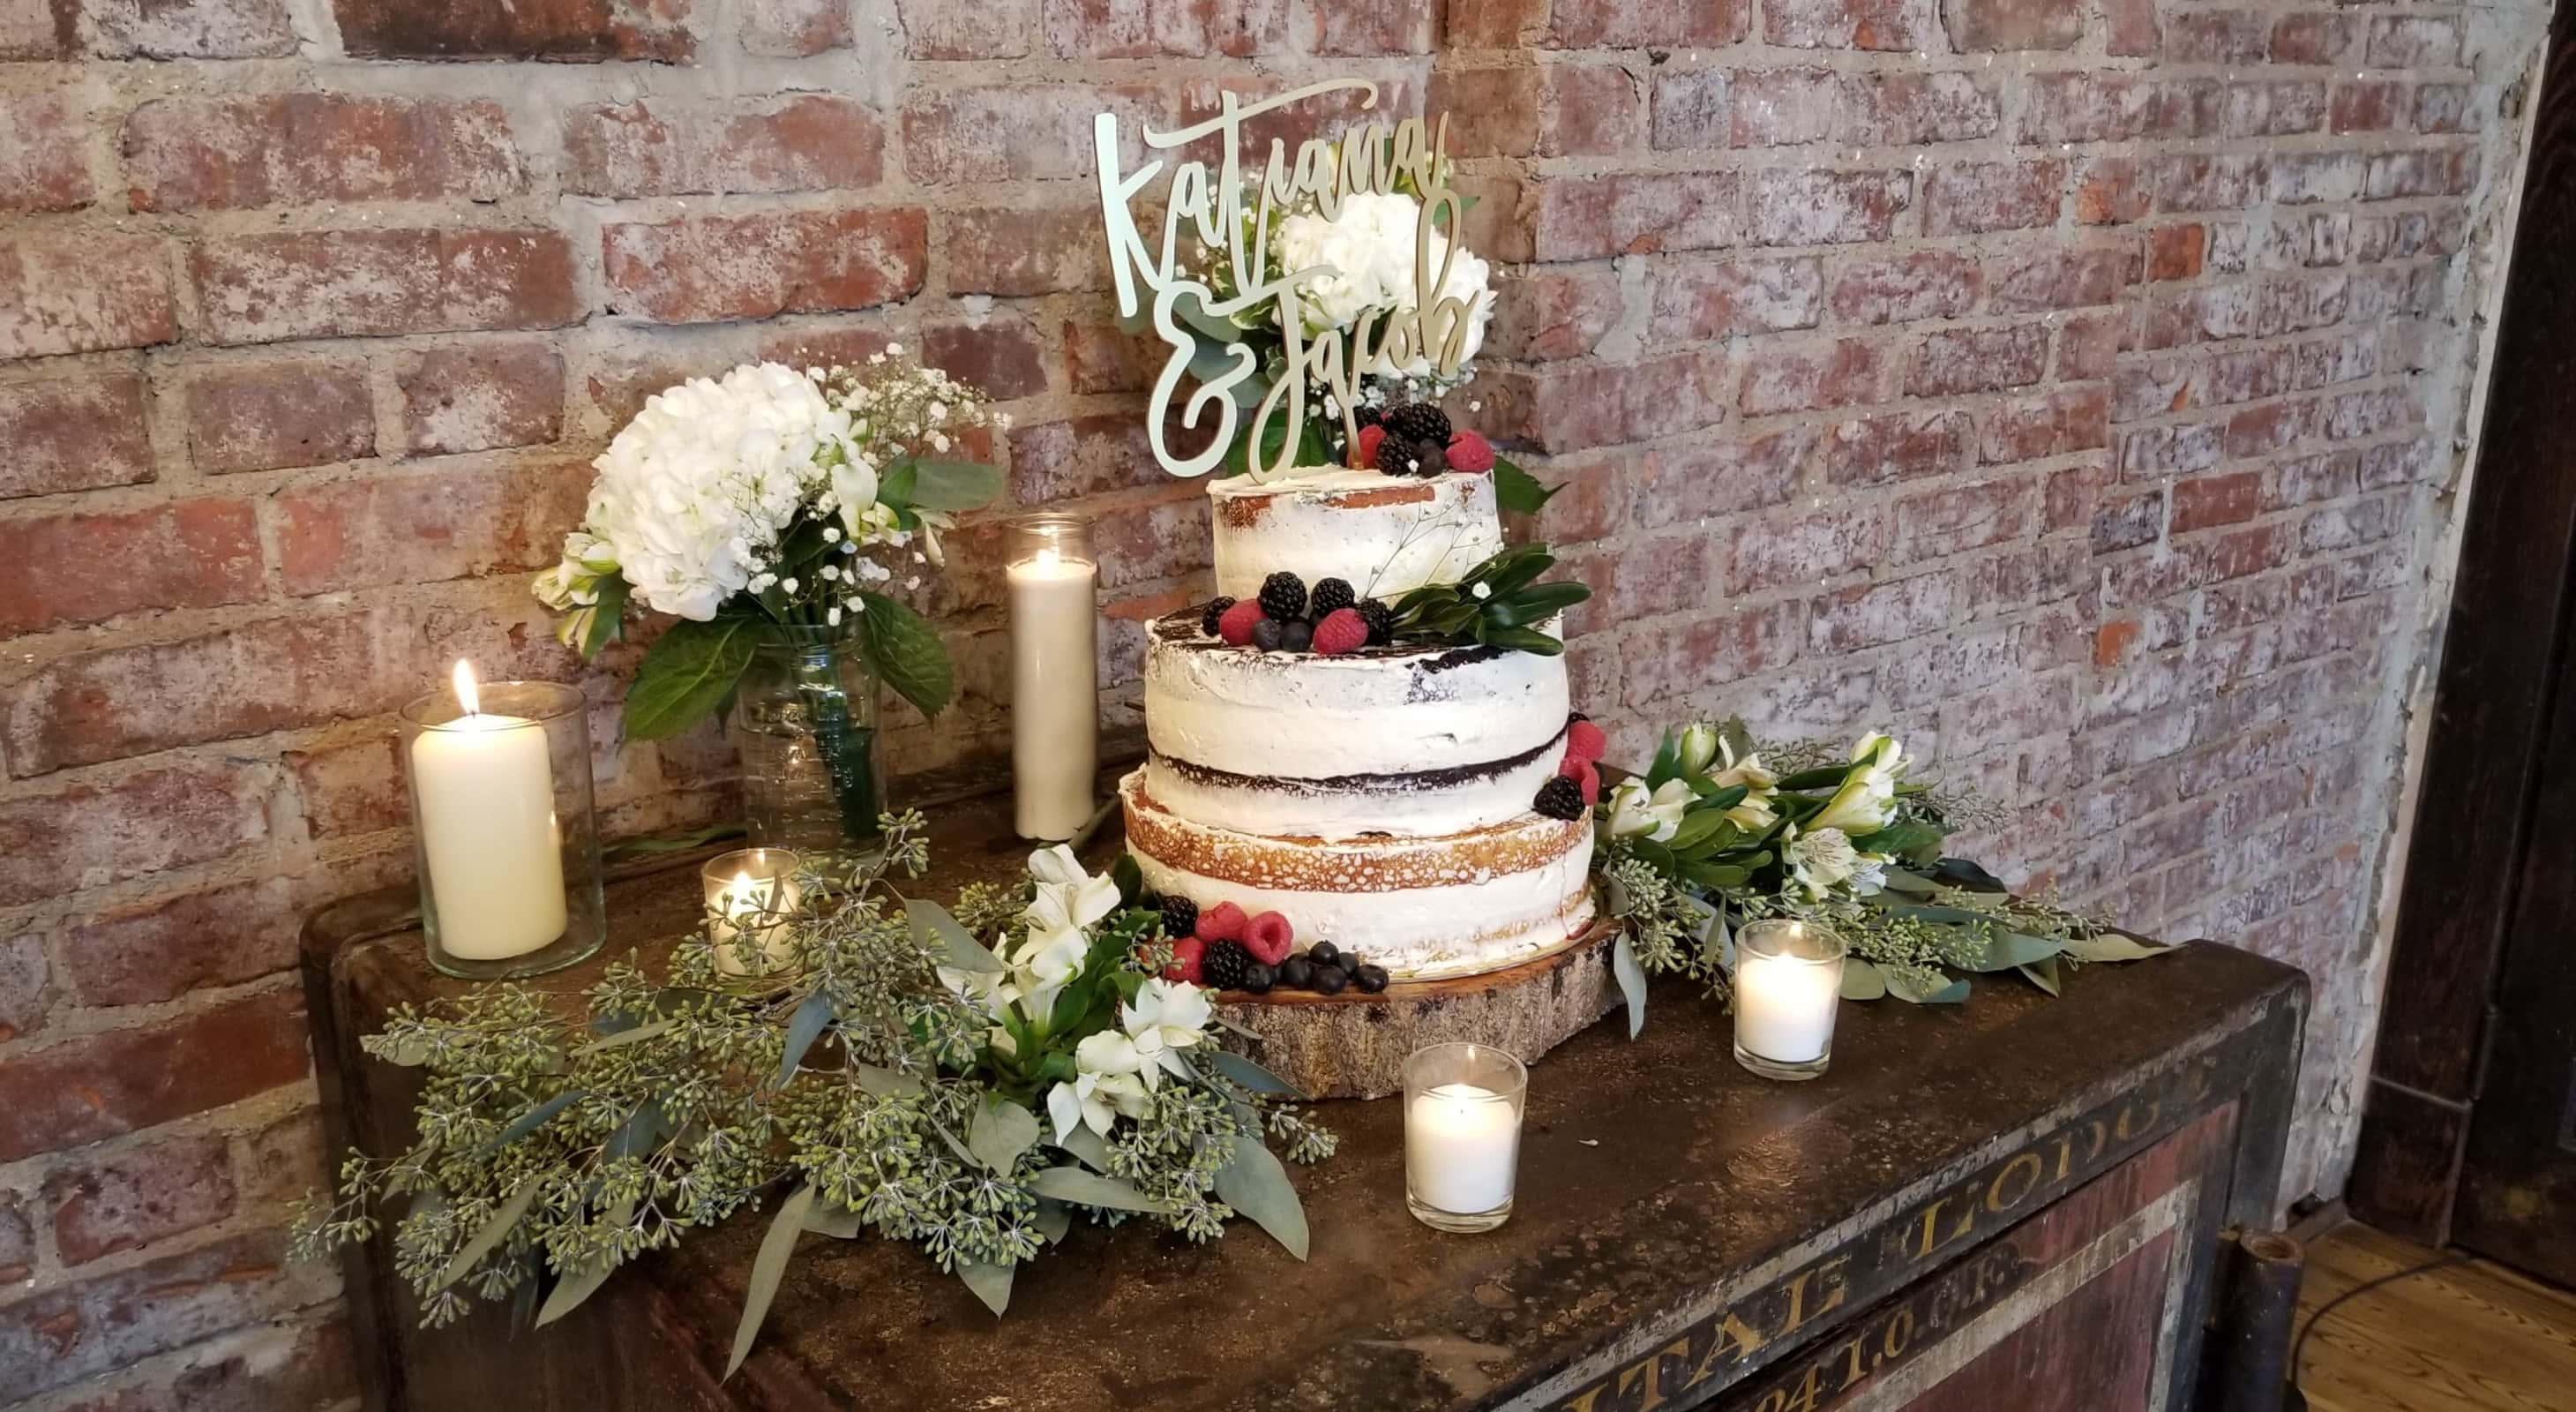 A 3-tiered wedding cake decorated with berries and creme frosting